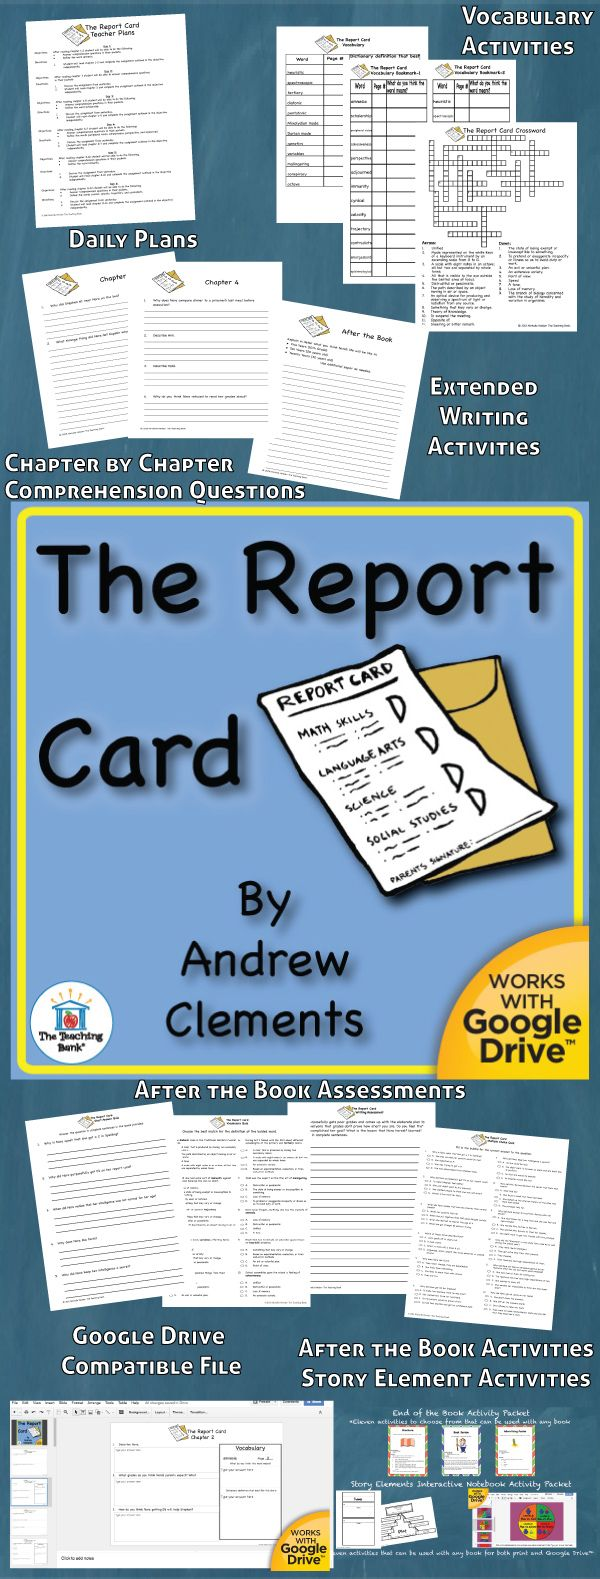 book report card The report card [andrew clements] on amazoncom free shipping on qualifying offers the report card.